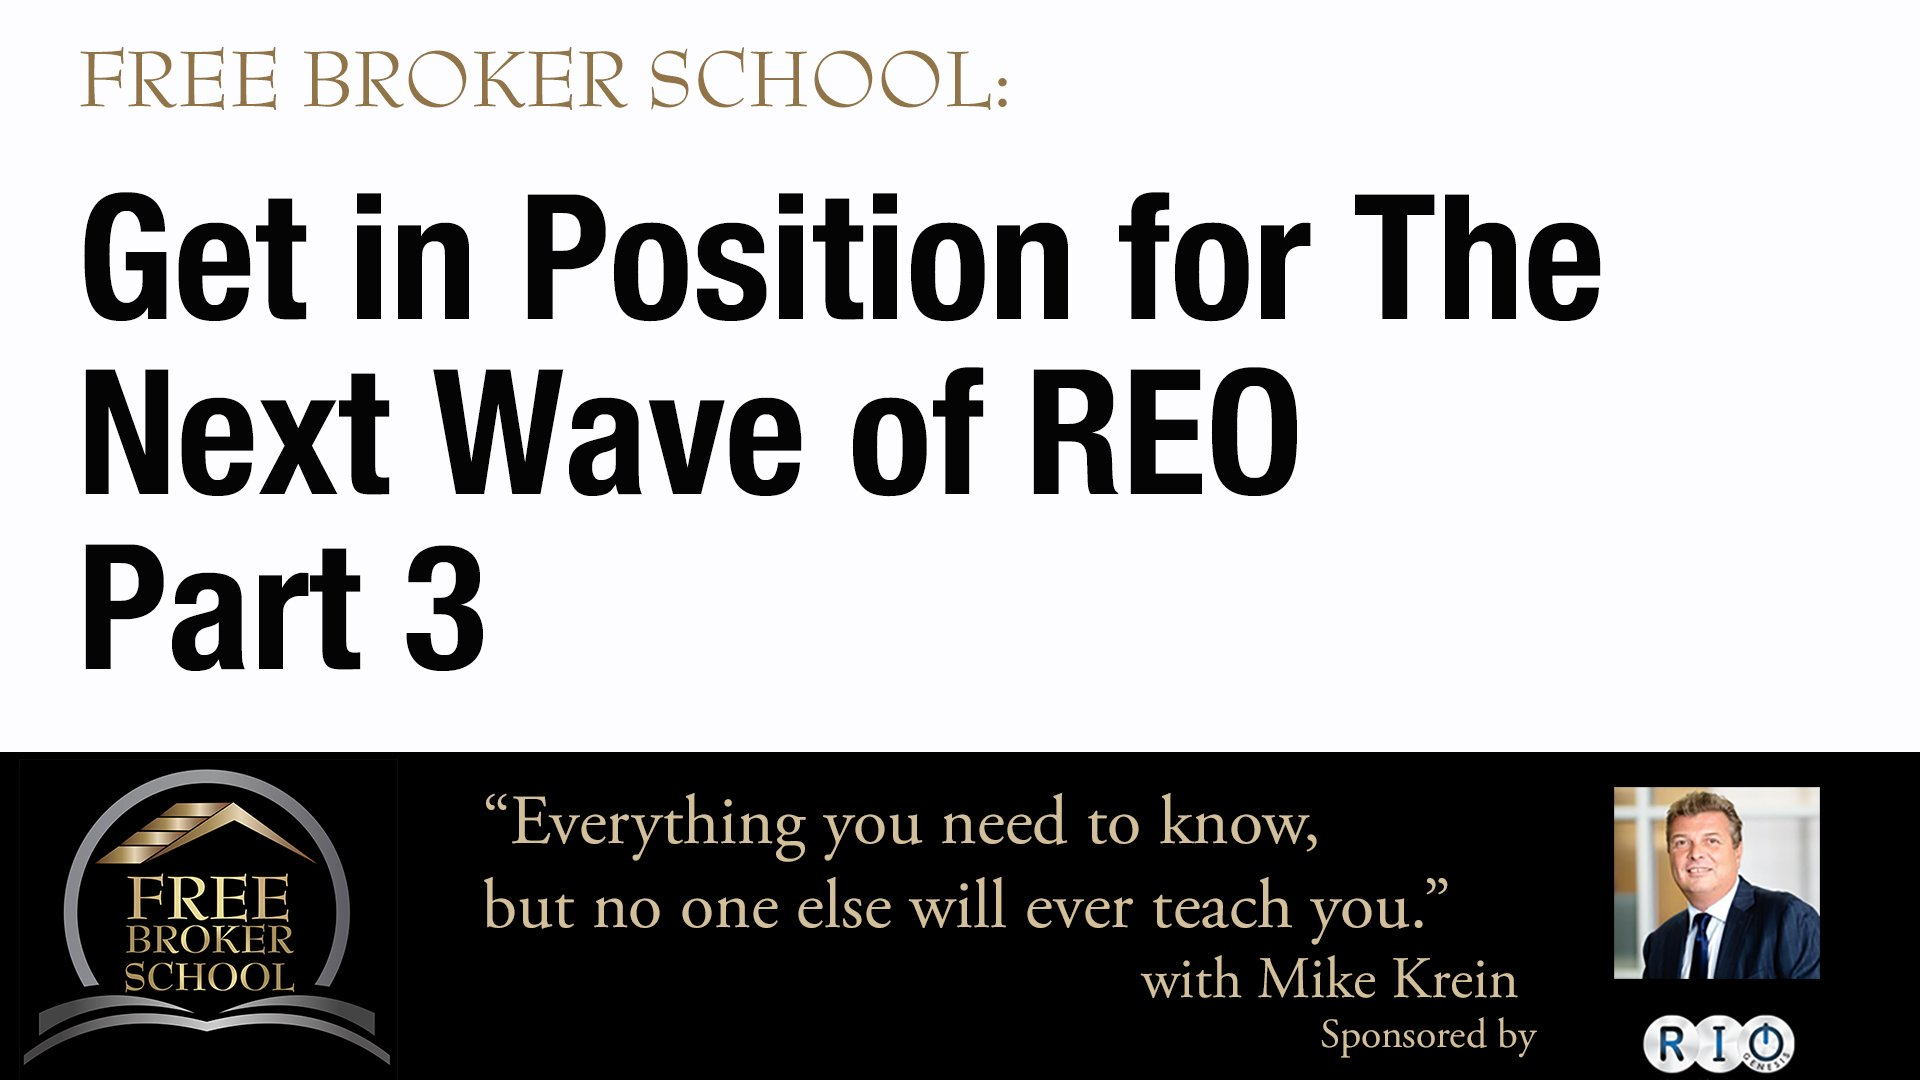 Free Broker School: Get in Position for the Next Wave of REO Part 3